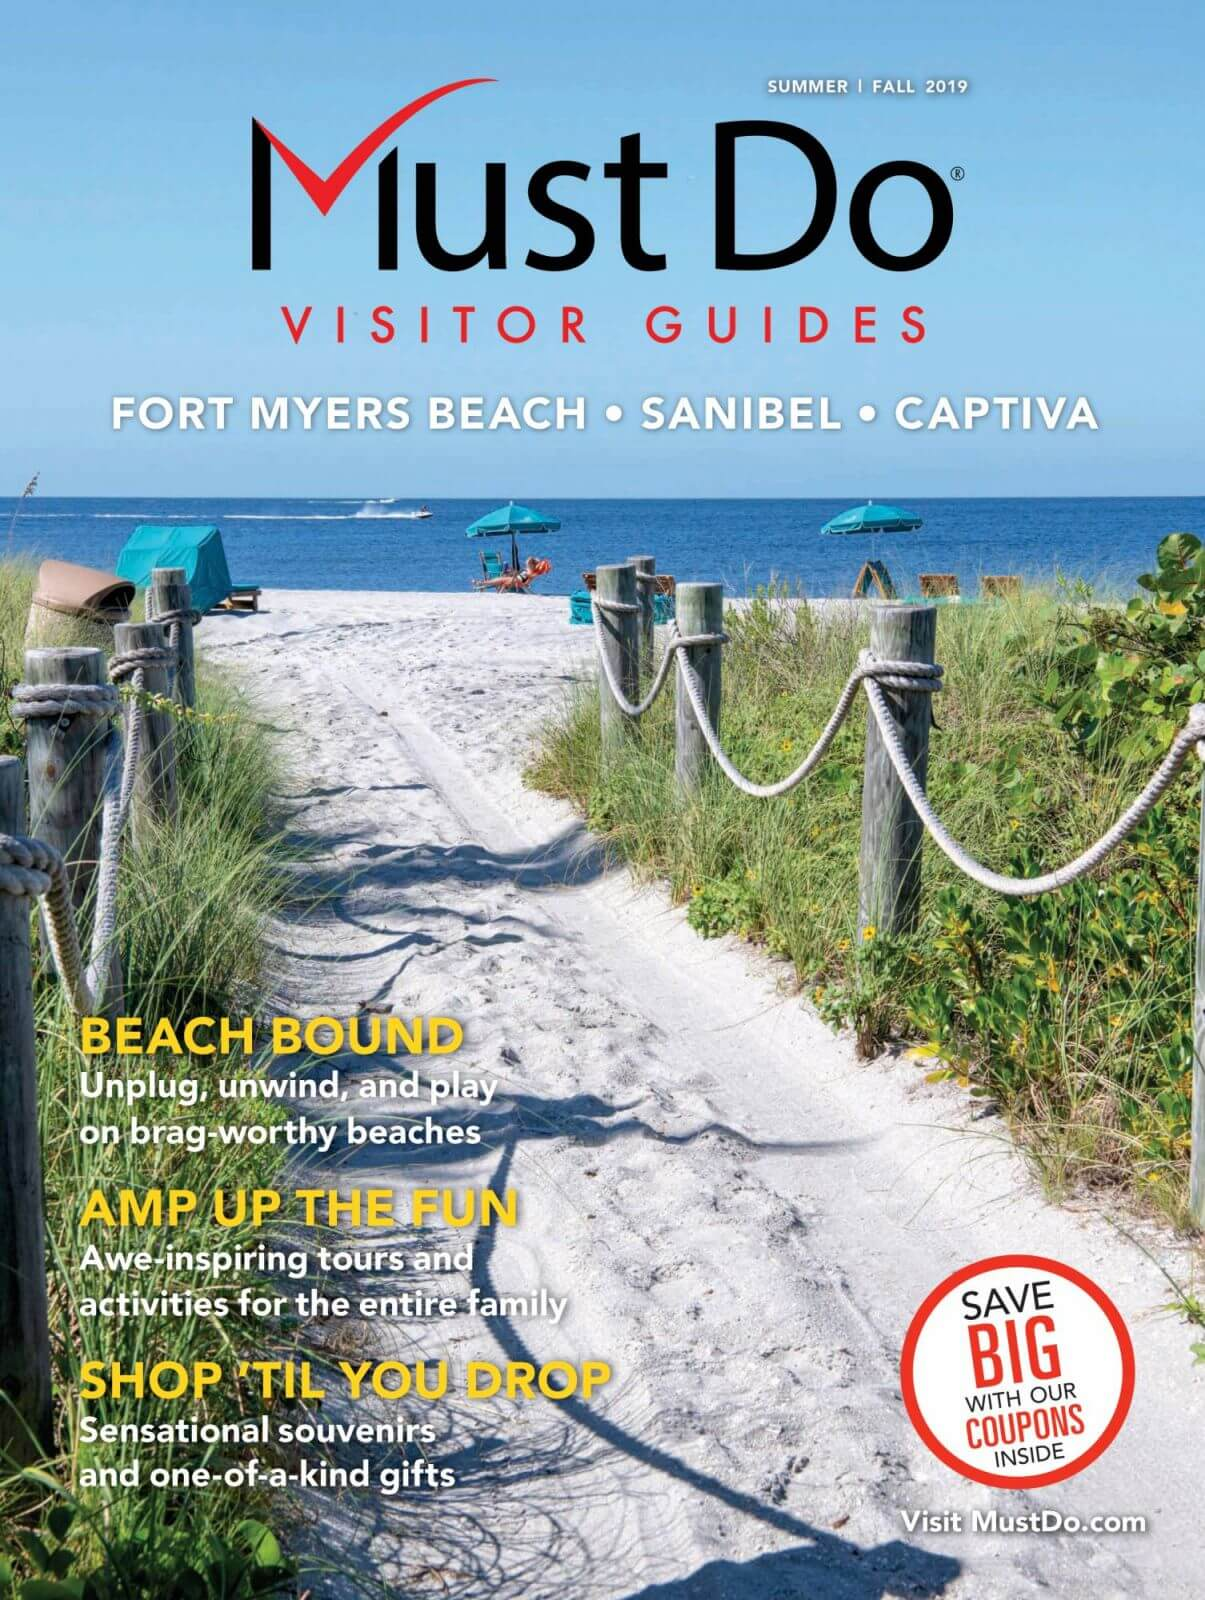 Planning a Vacation to Fort Myers or Sanibel, FL: All You Need to Know. Must Do Visitor Guides Fort Myers Beach, Sanibel, Captiva.